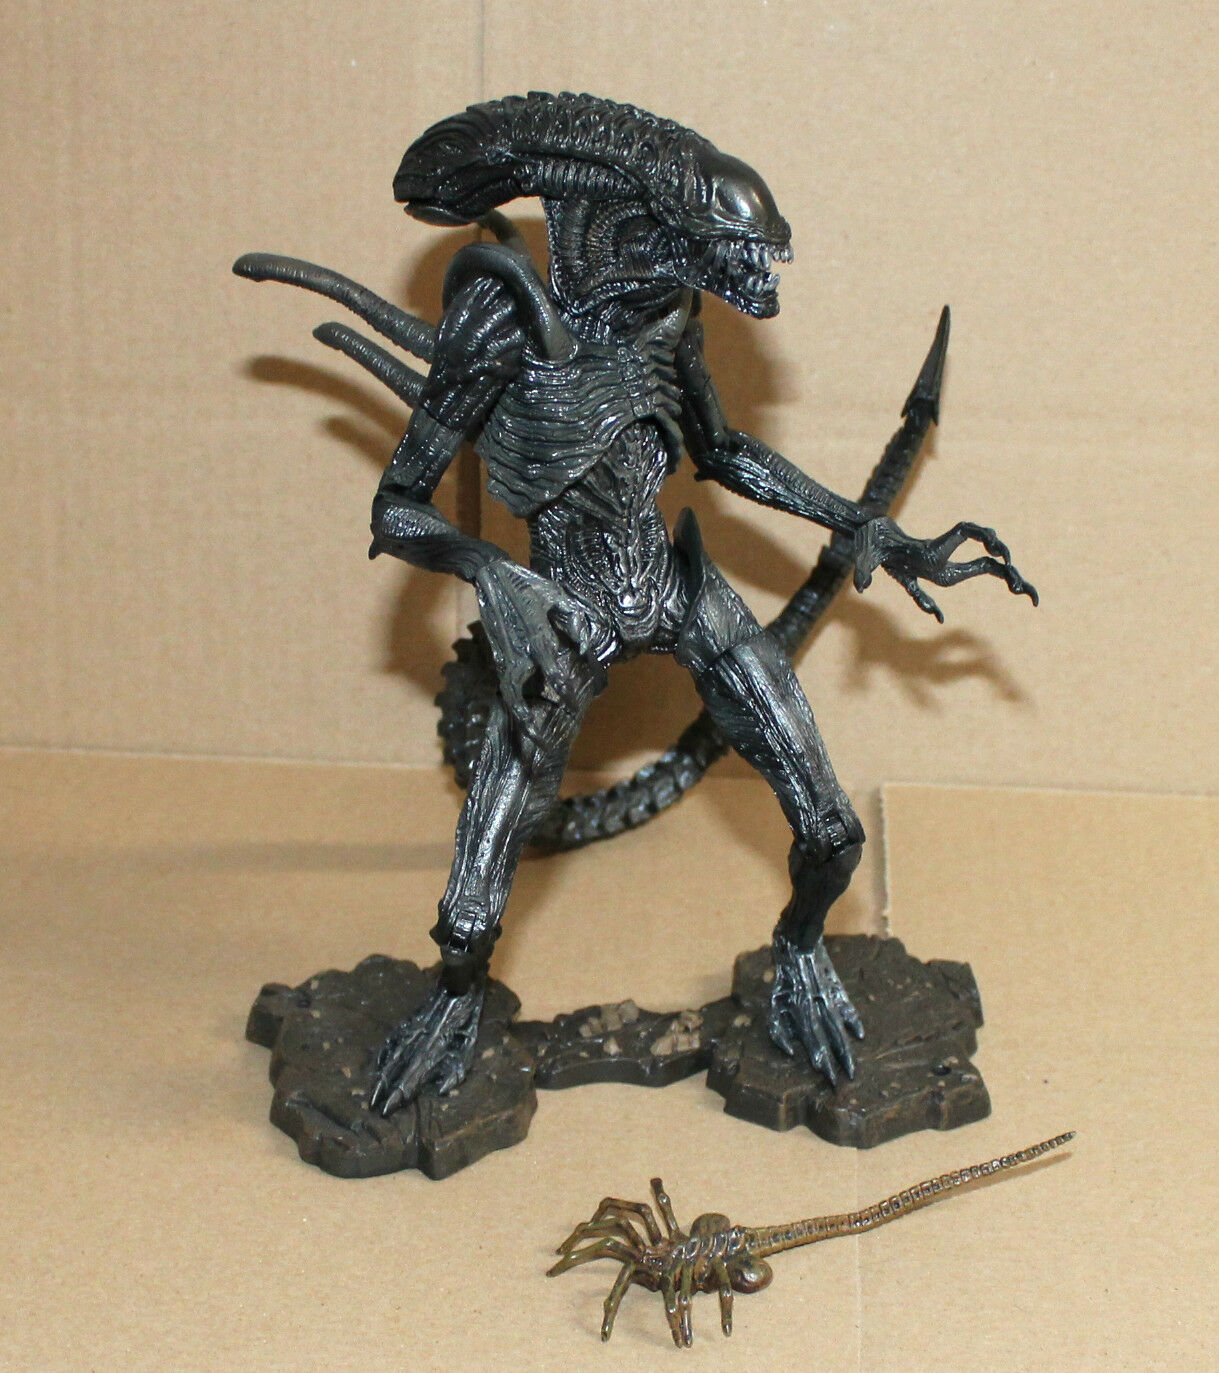 AVPR Aliens vs Protator Requiem Alien Warrior Action Figure Neca